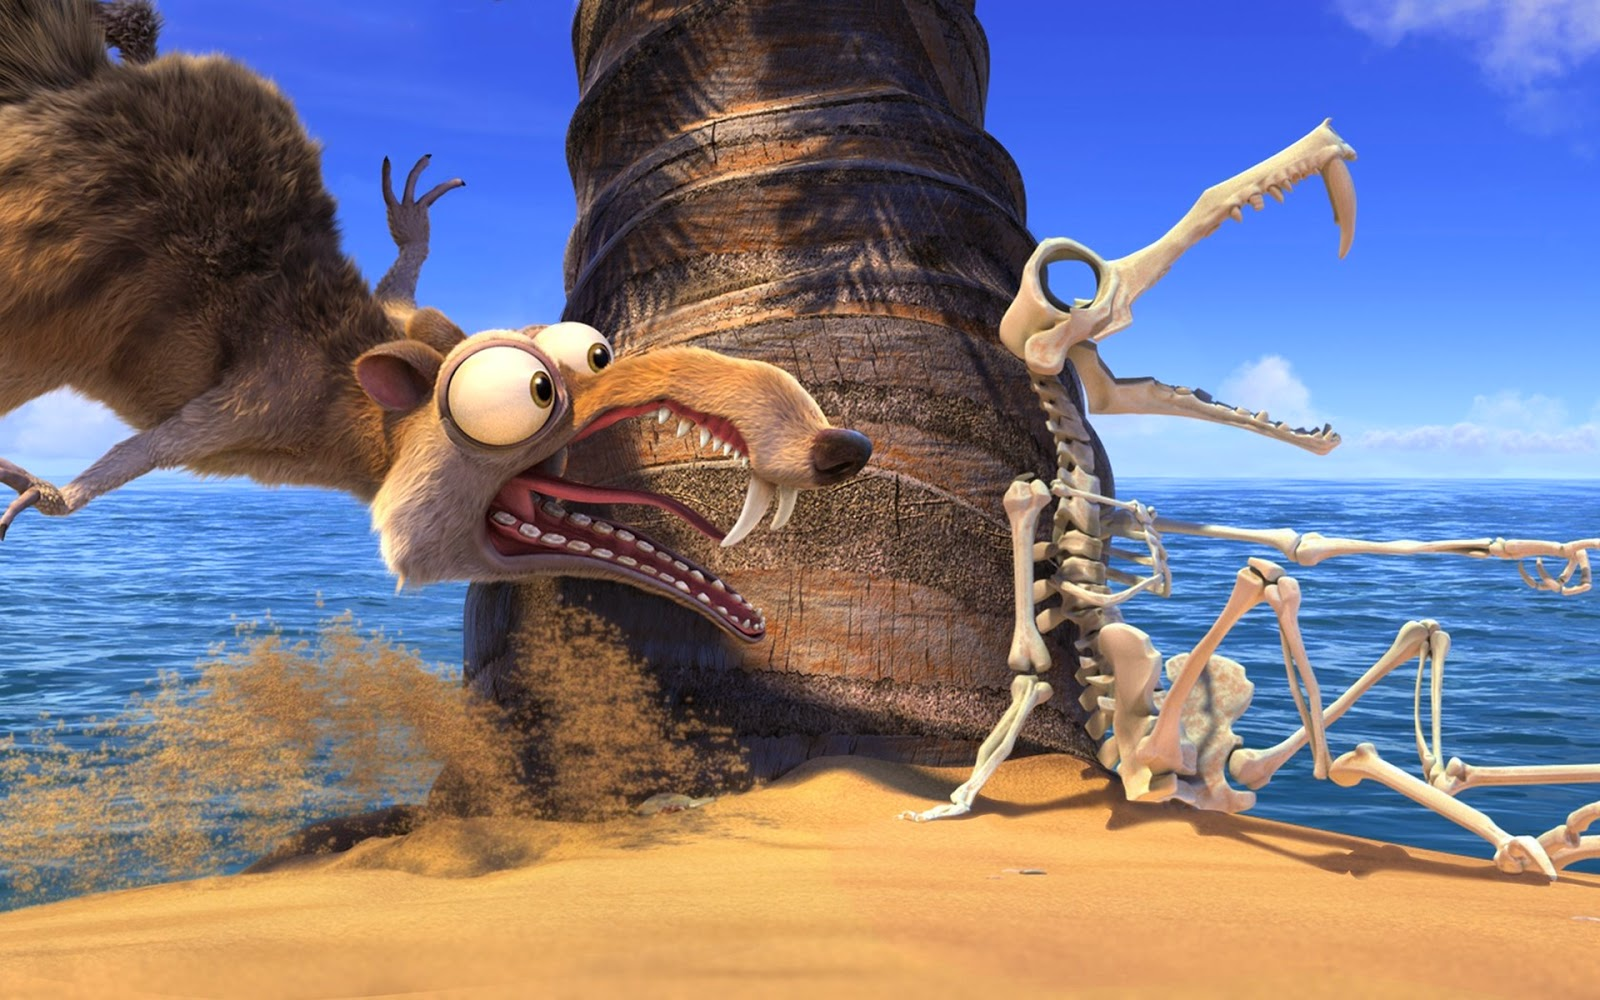 Ice age wallpapers HD - Beautiful wallpapers collection 2018